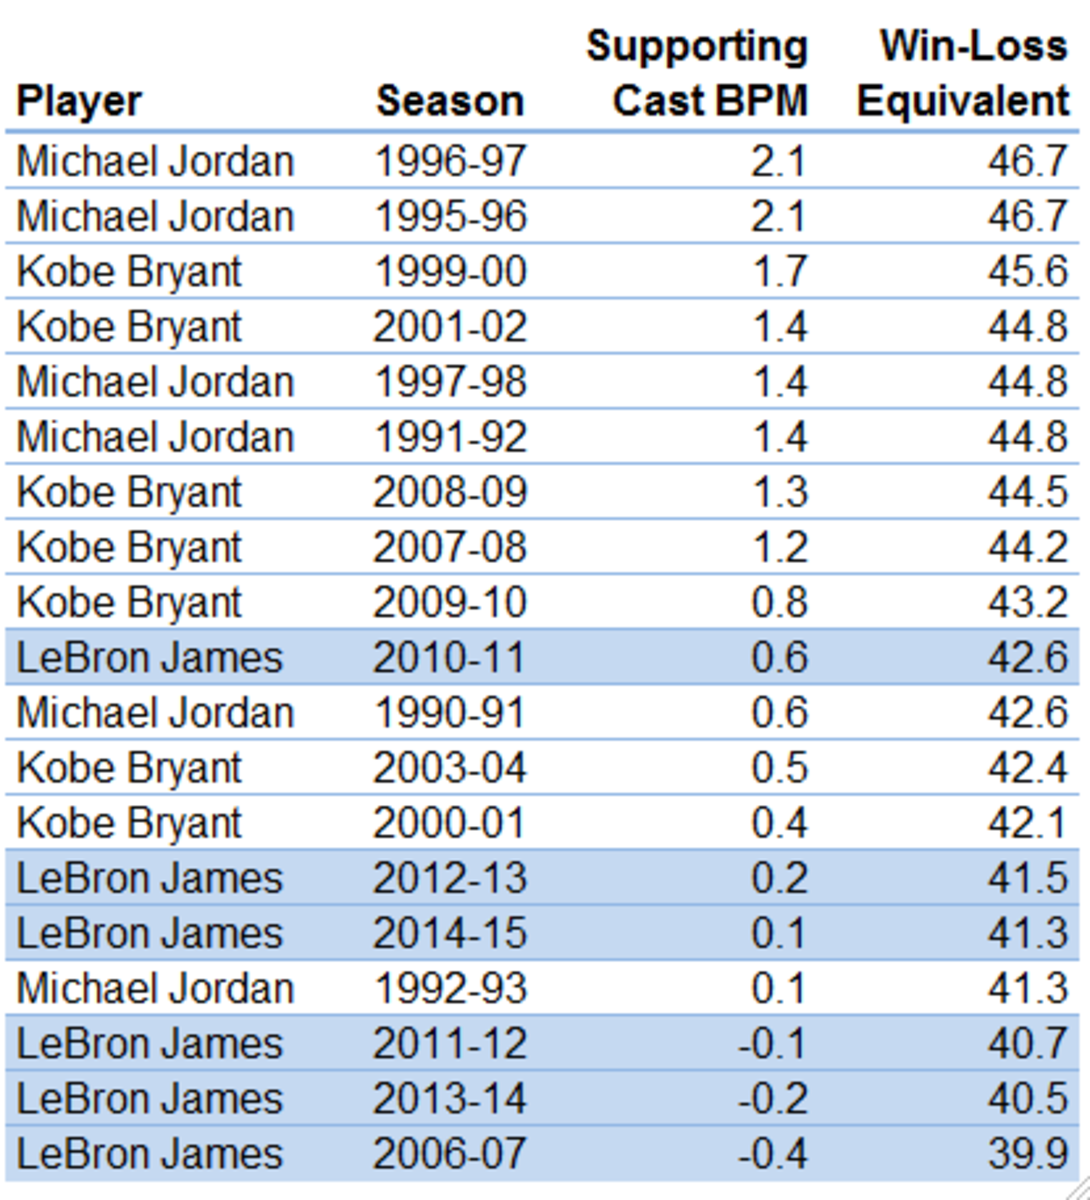 levy_lebron_9-9-15_chart_3.png